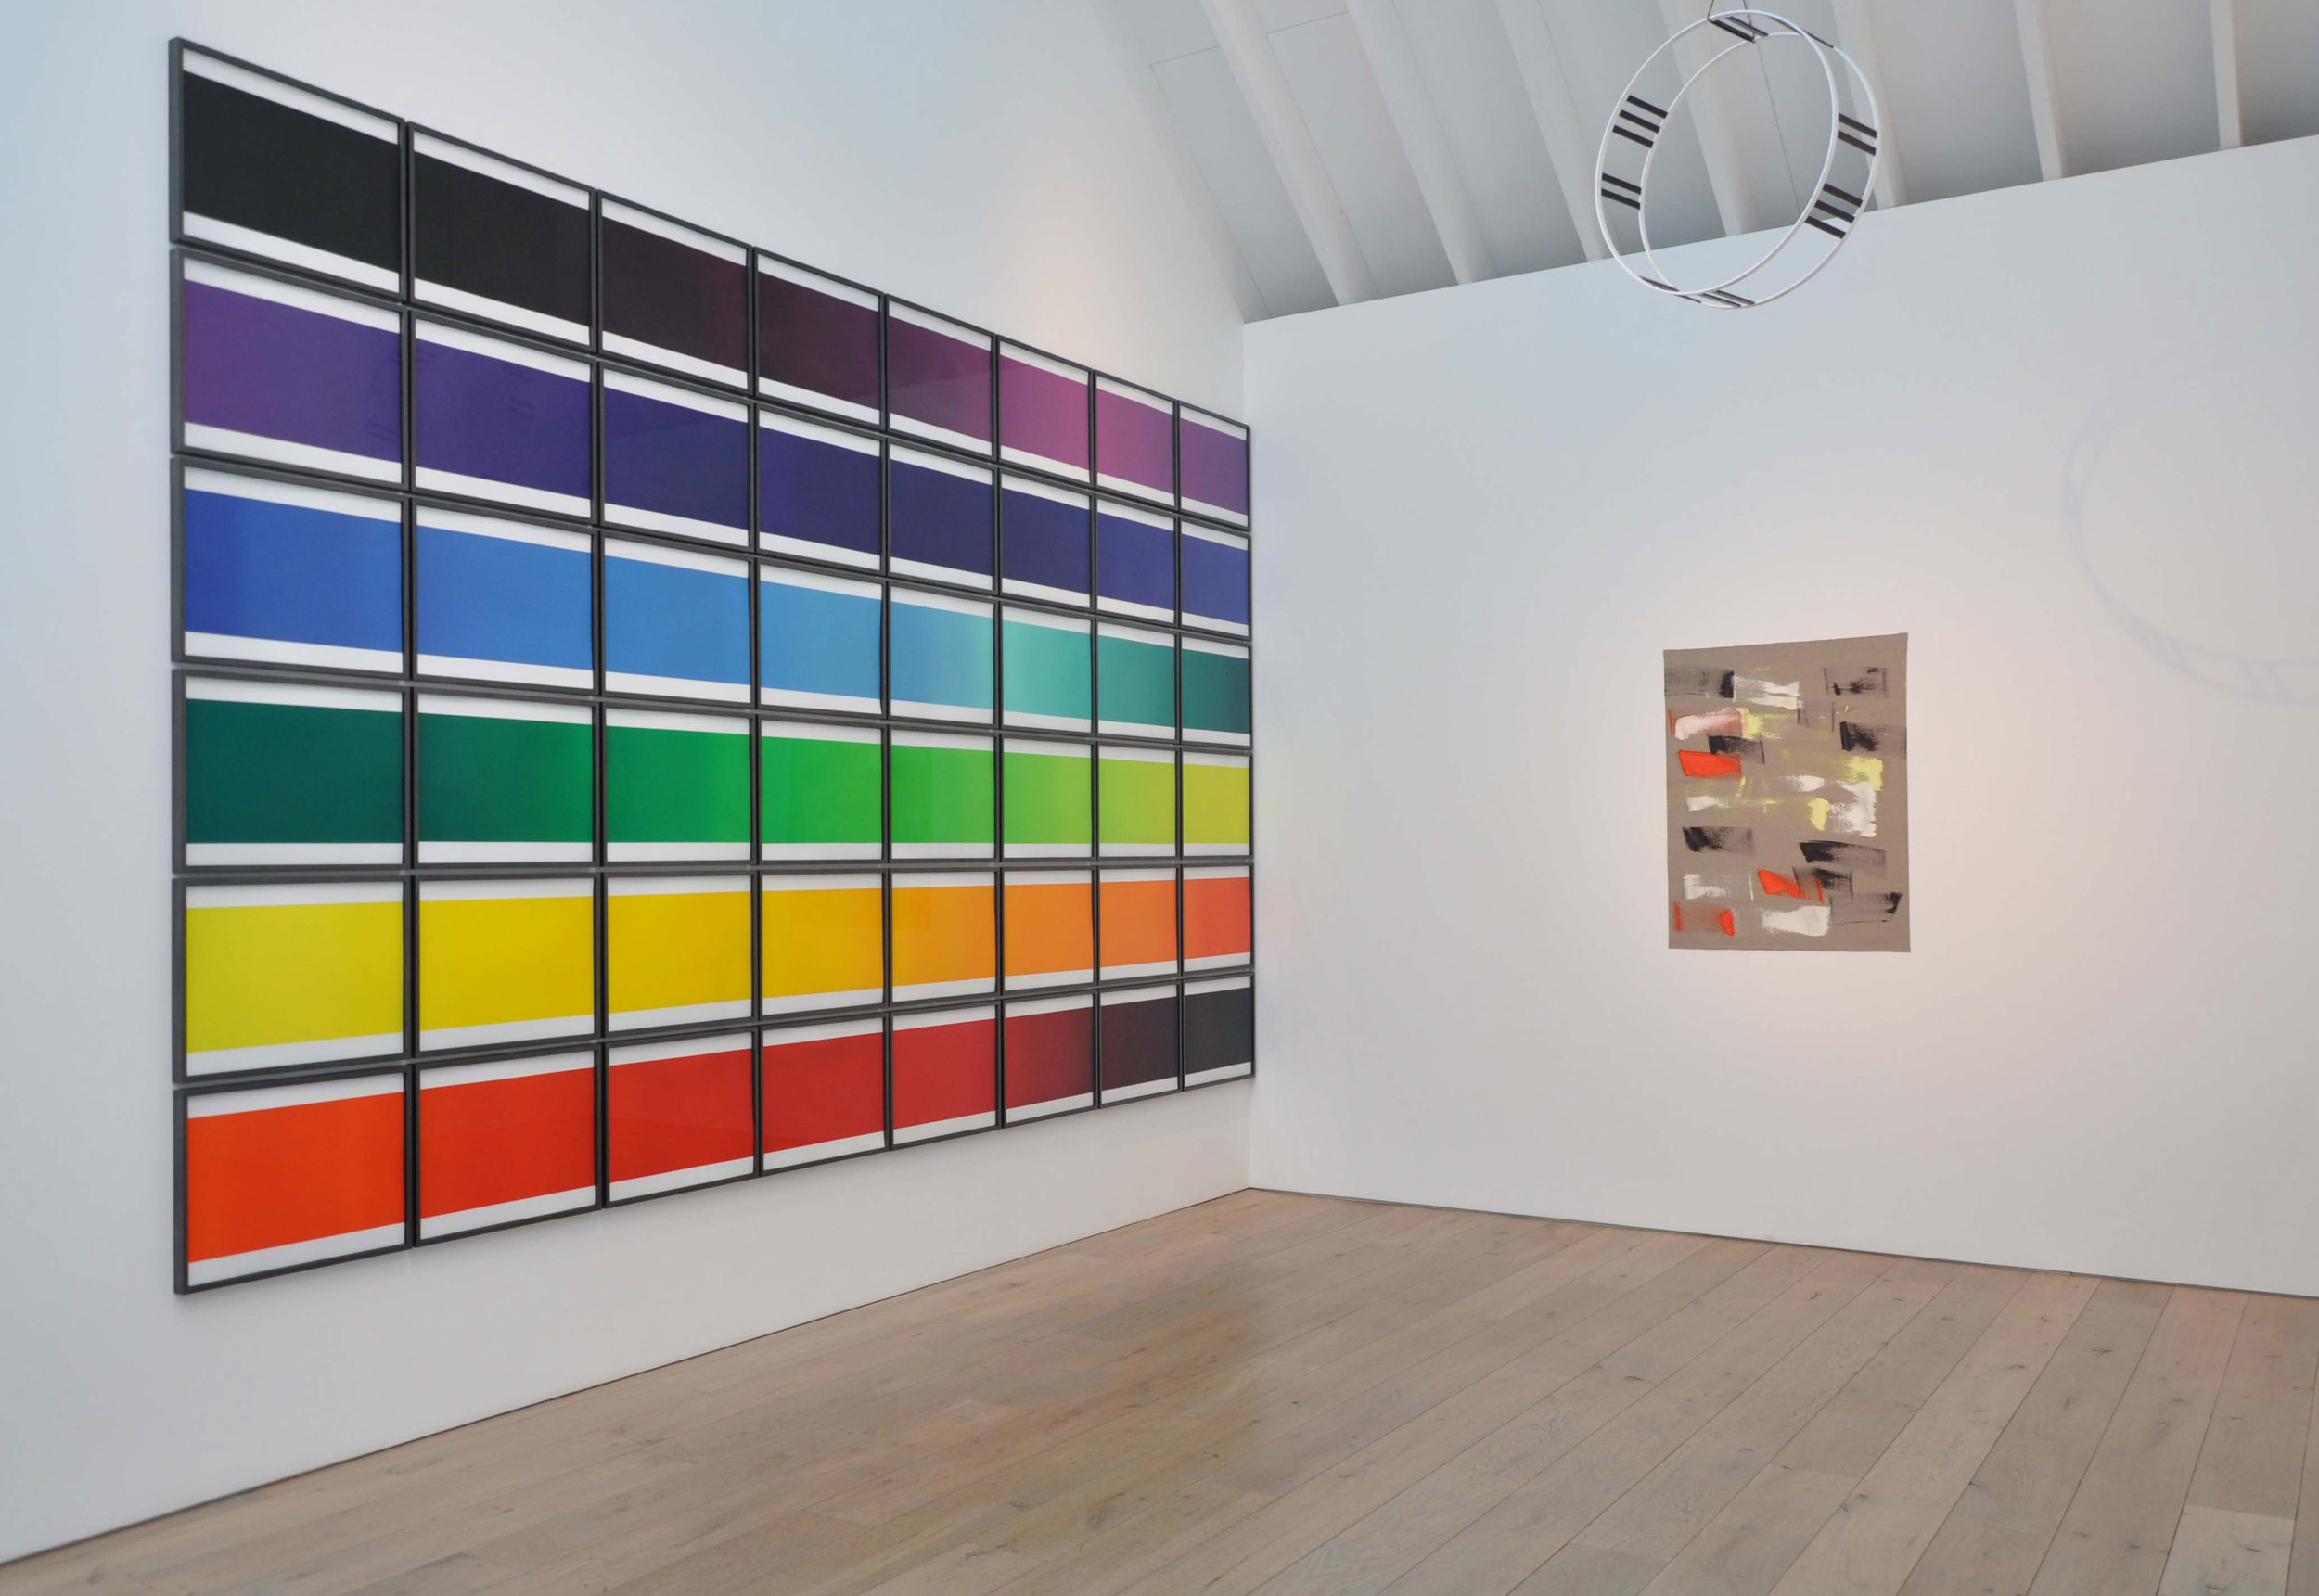 Works by Olafur Eliasson, Ingo Meller and Camilla Low from the Pier Arts Centre Collection